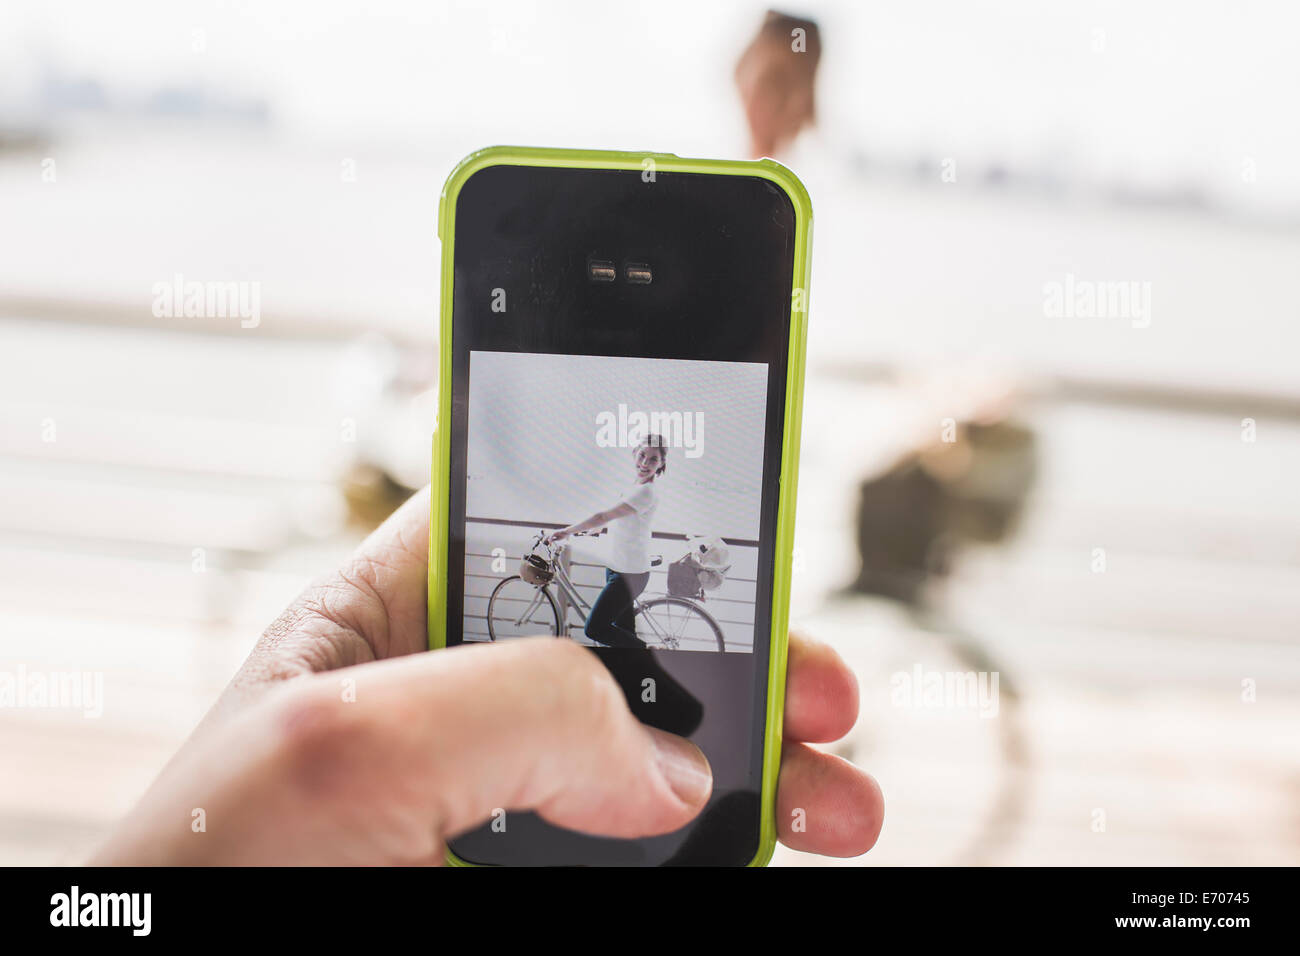 Male hand photographing girlfriend and bicycle with smartphone at riverside, New York City, USA - Stock Image